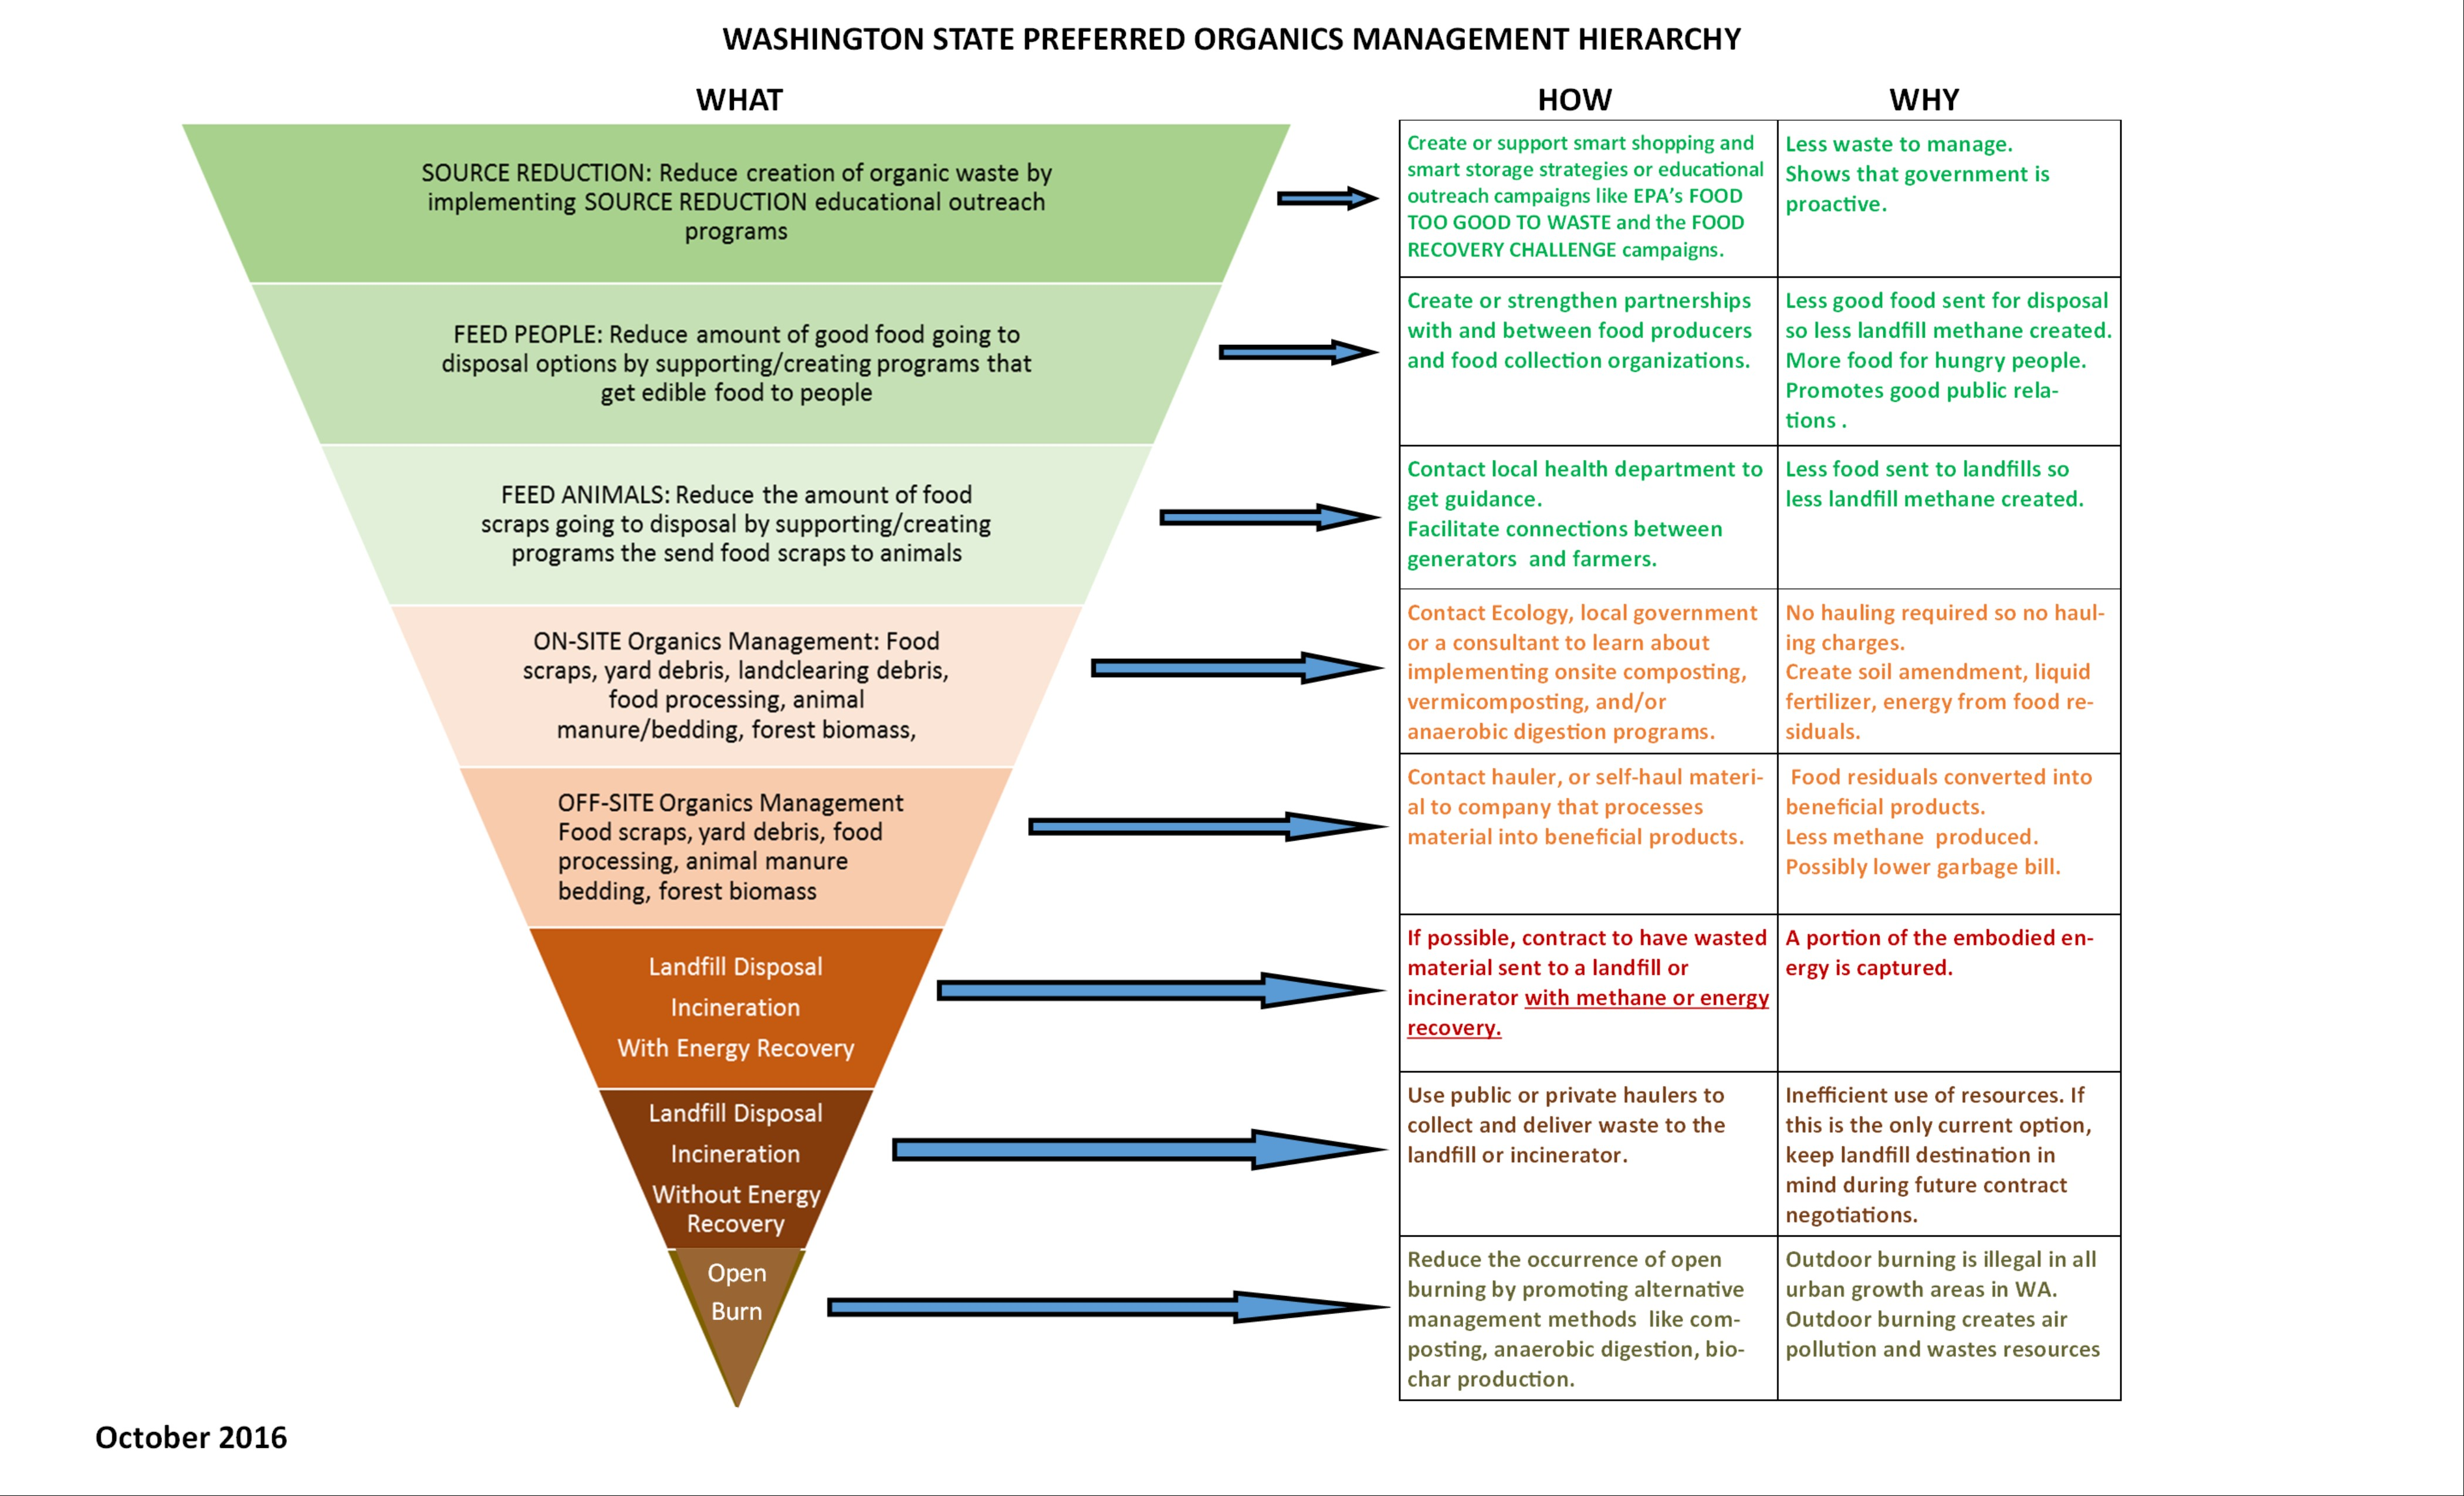 An infographic showing the preferred hierarchy of methods to reduce and reuse organic waste in Washington.